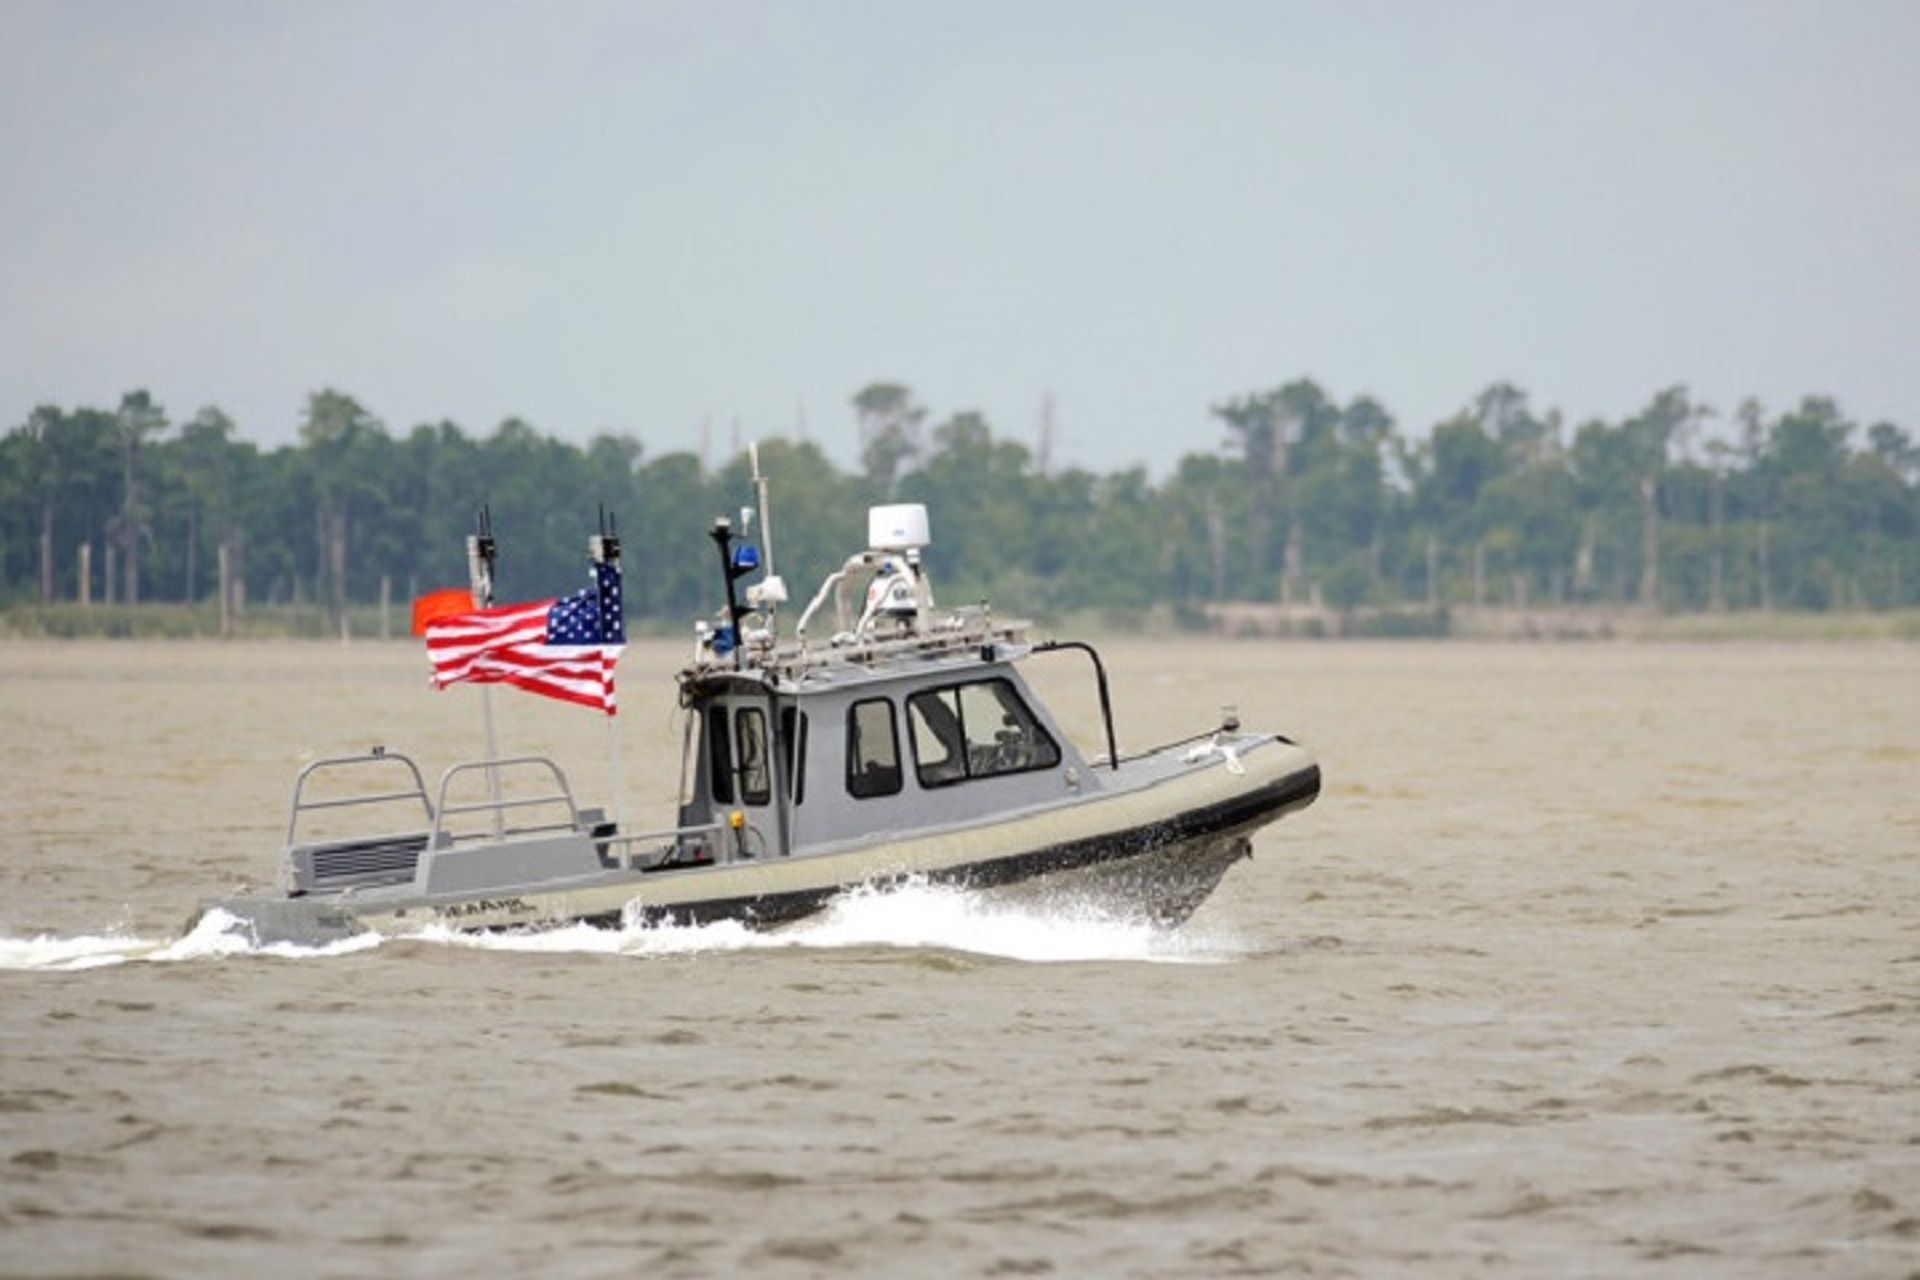 U.S. Navy Gets in the Autonomous Game with Self-Sailing Swarm Boats